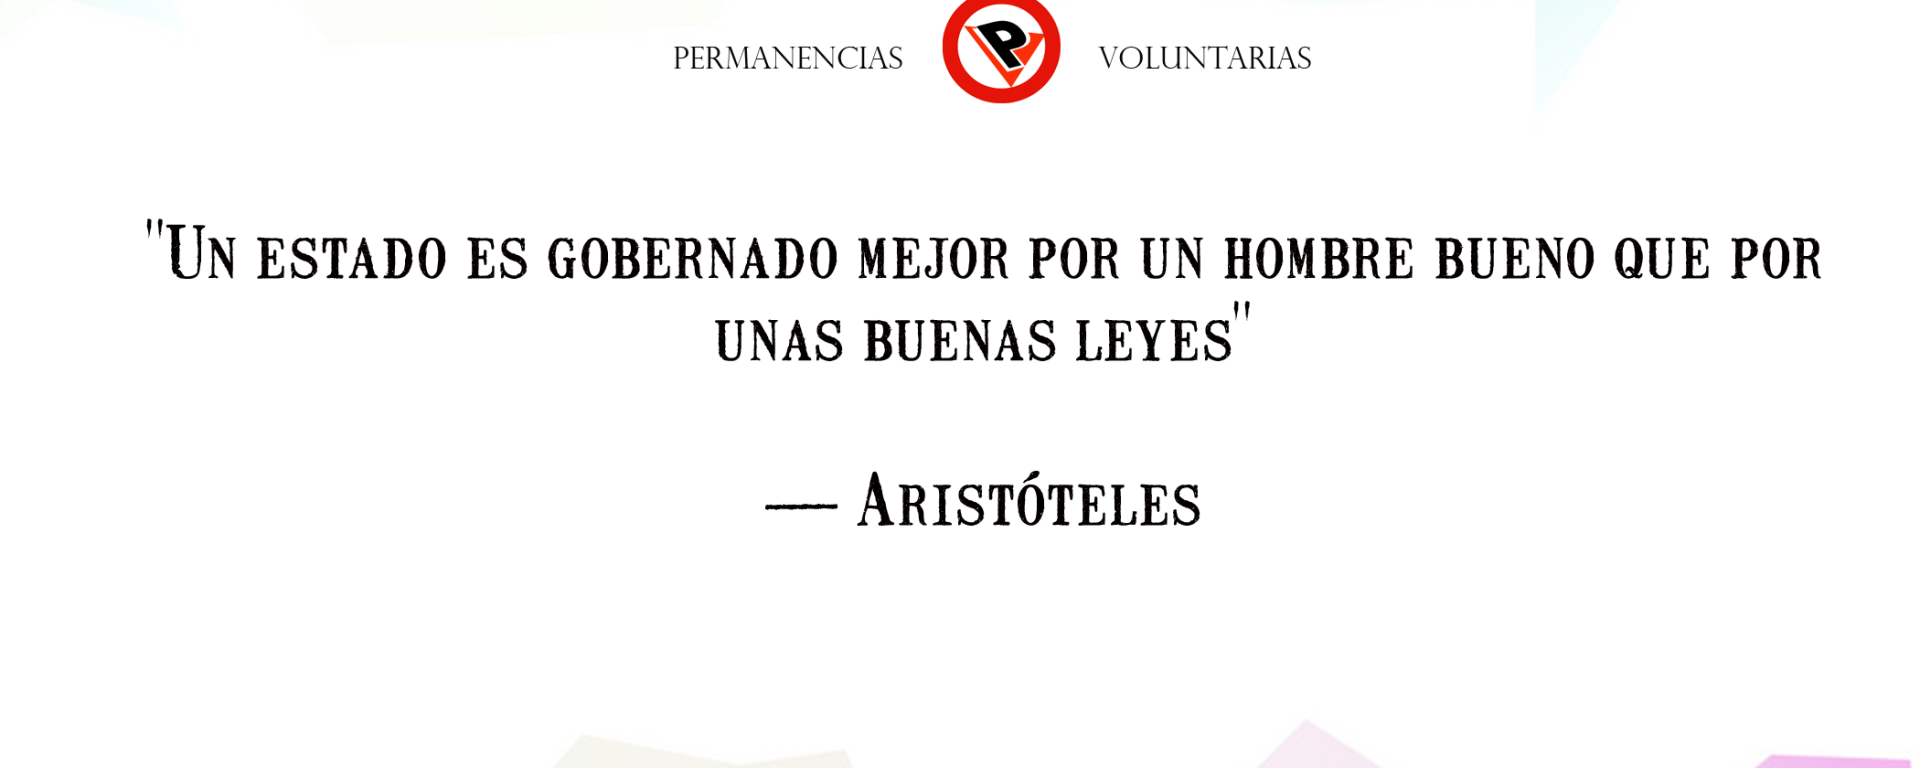 Frases-Permanencias-Voluntarias-104